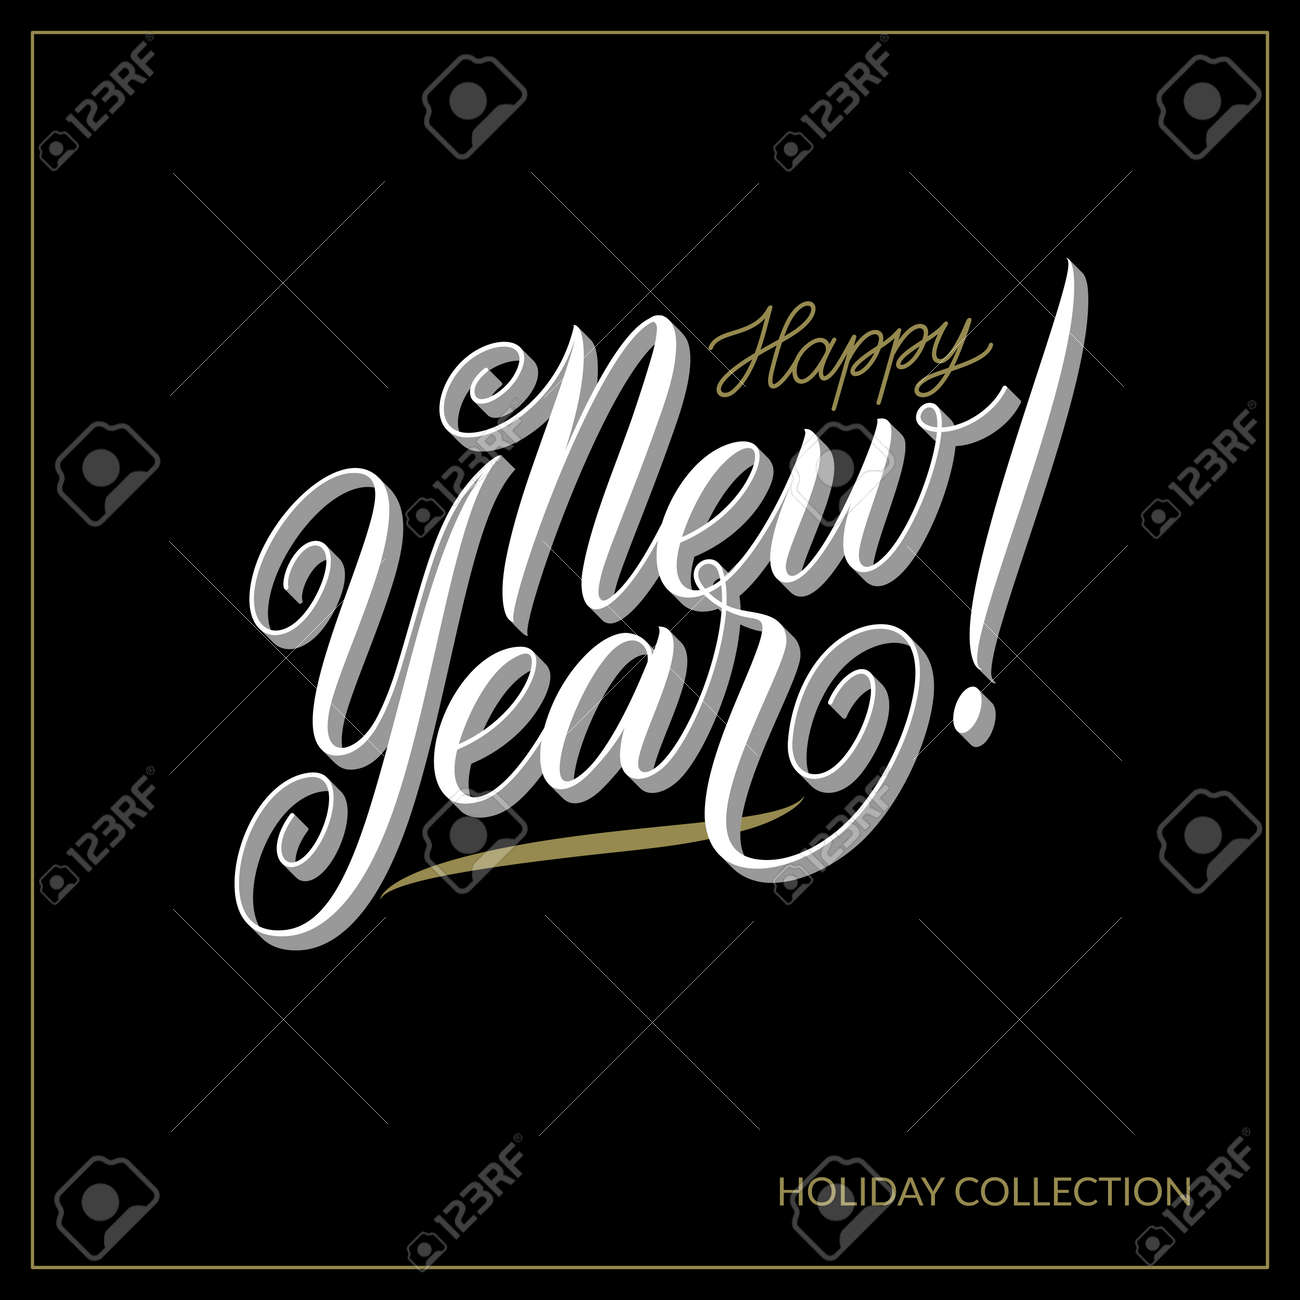 abstract black and white vector happy new year banner design template advertising logo and